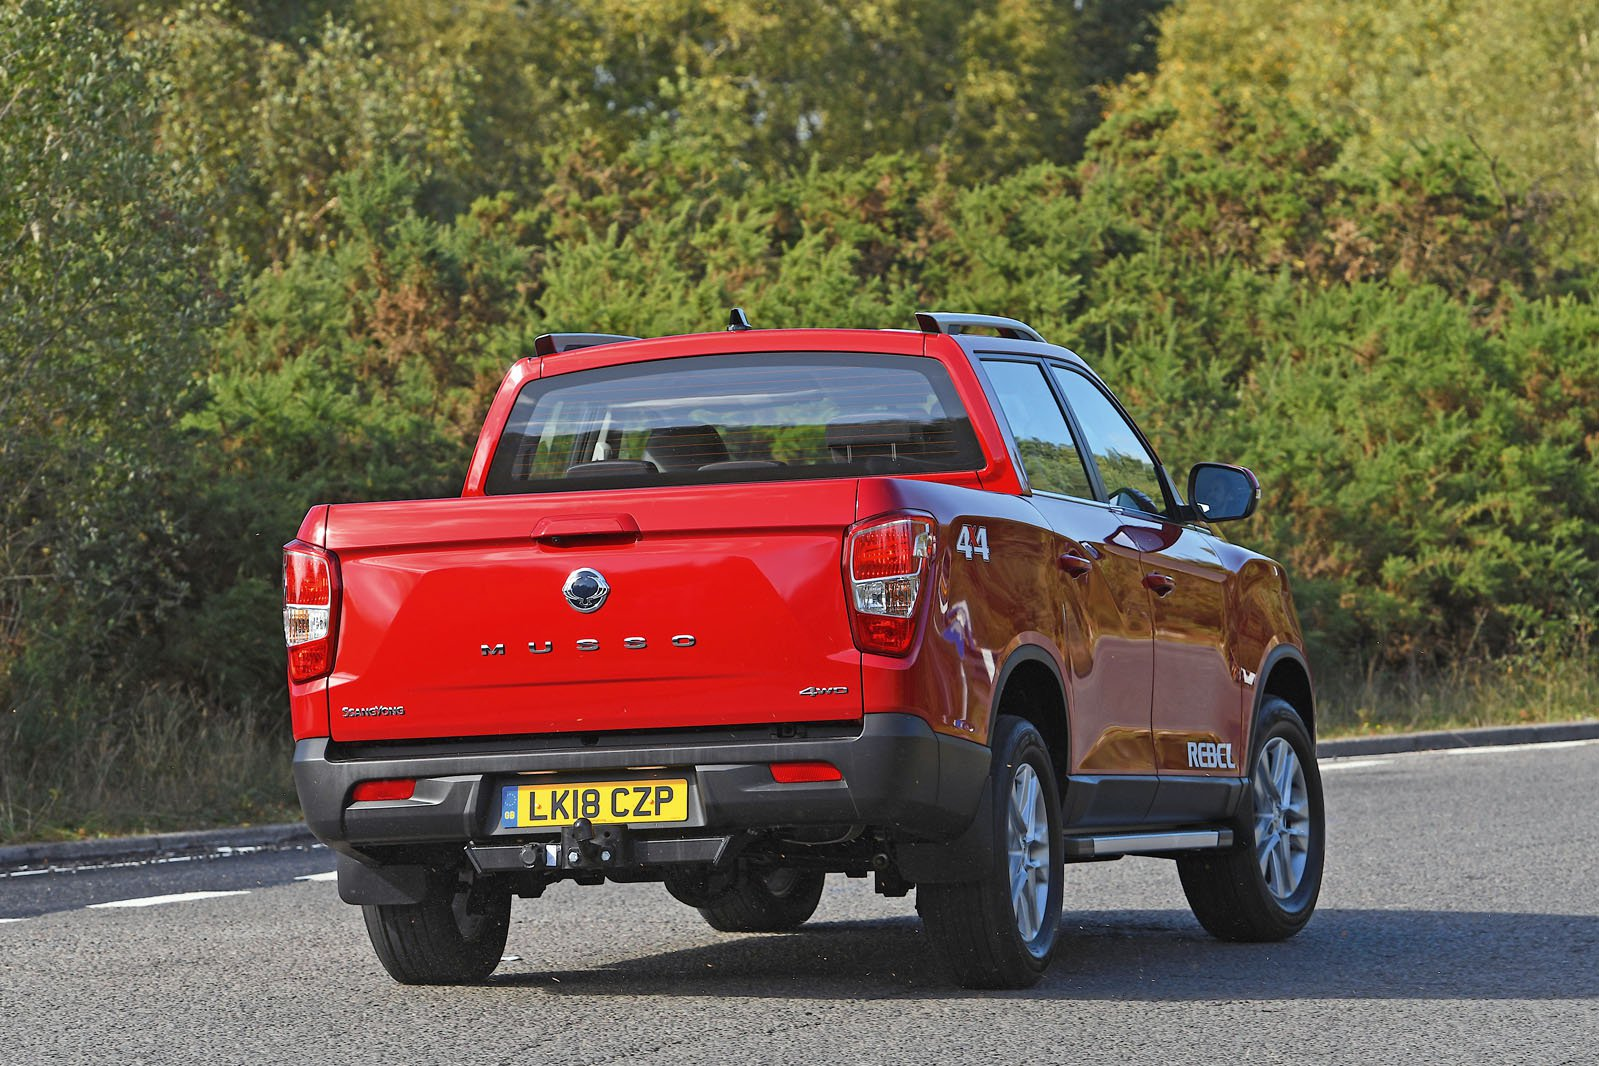 Ssangyong Musso rear